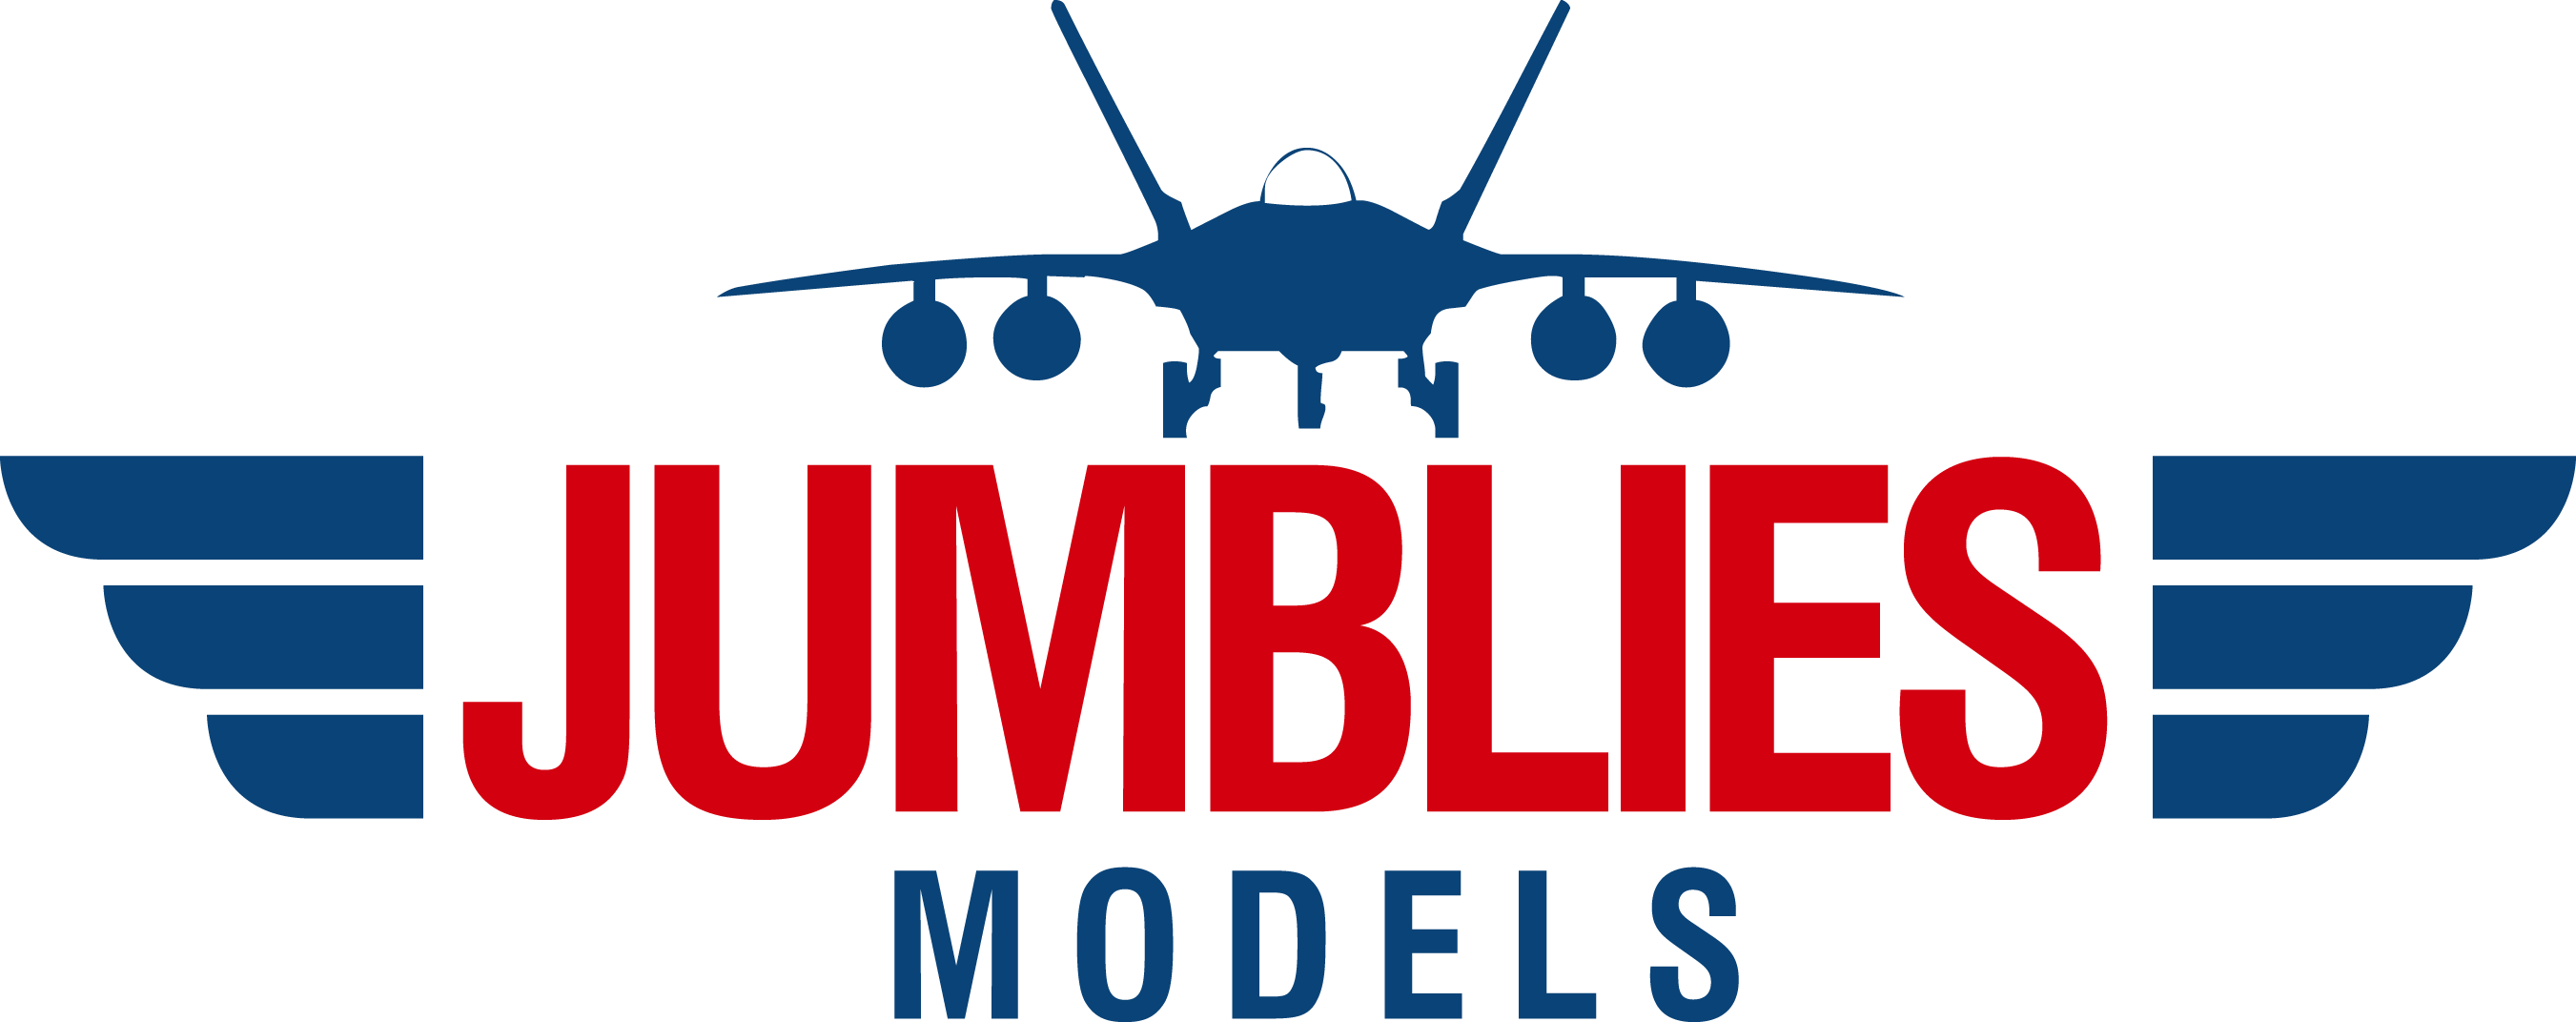 Read Jumblies Models Reviews